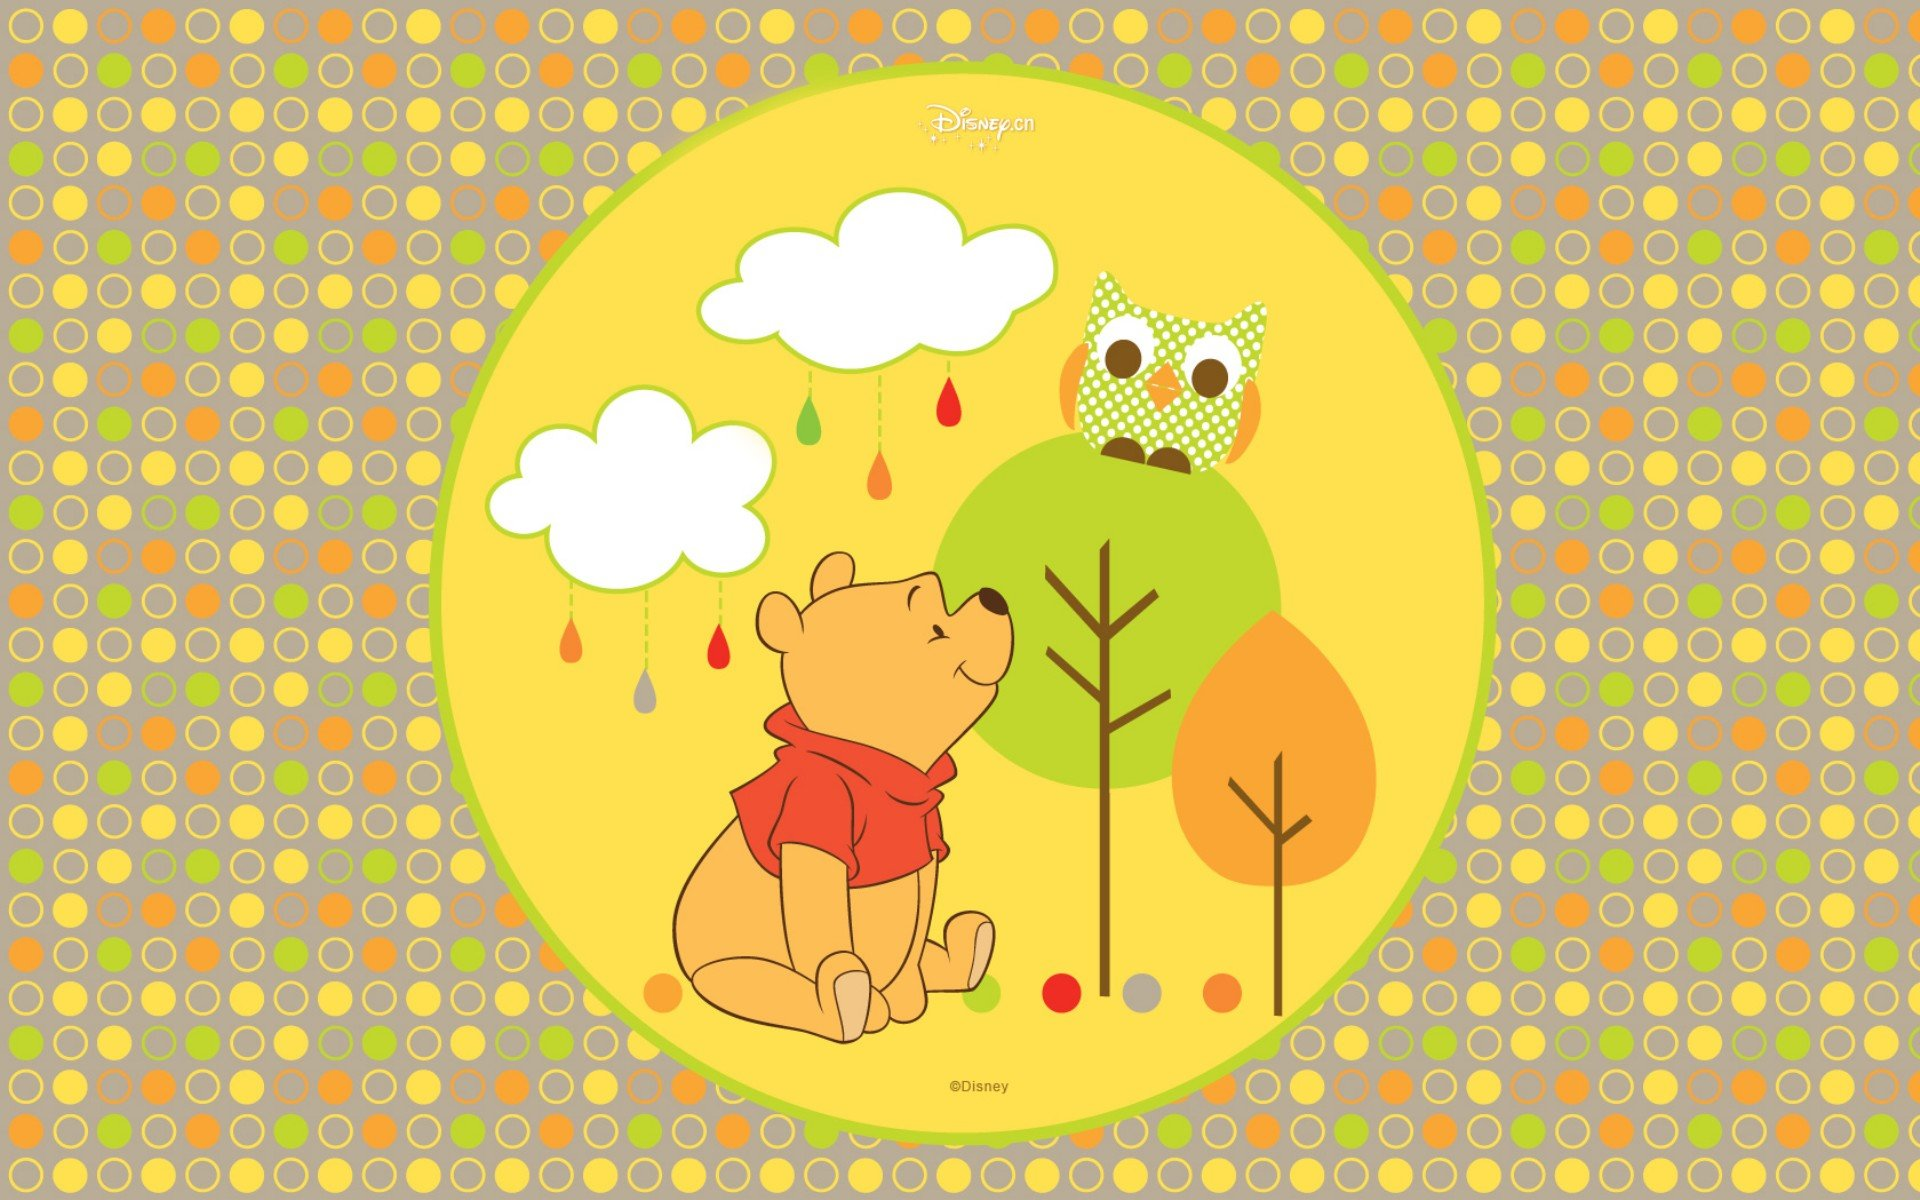 Free Winnie The Pooh High Quality Wallpaper ID74445 For Hd 1920x1200 Computer